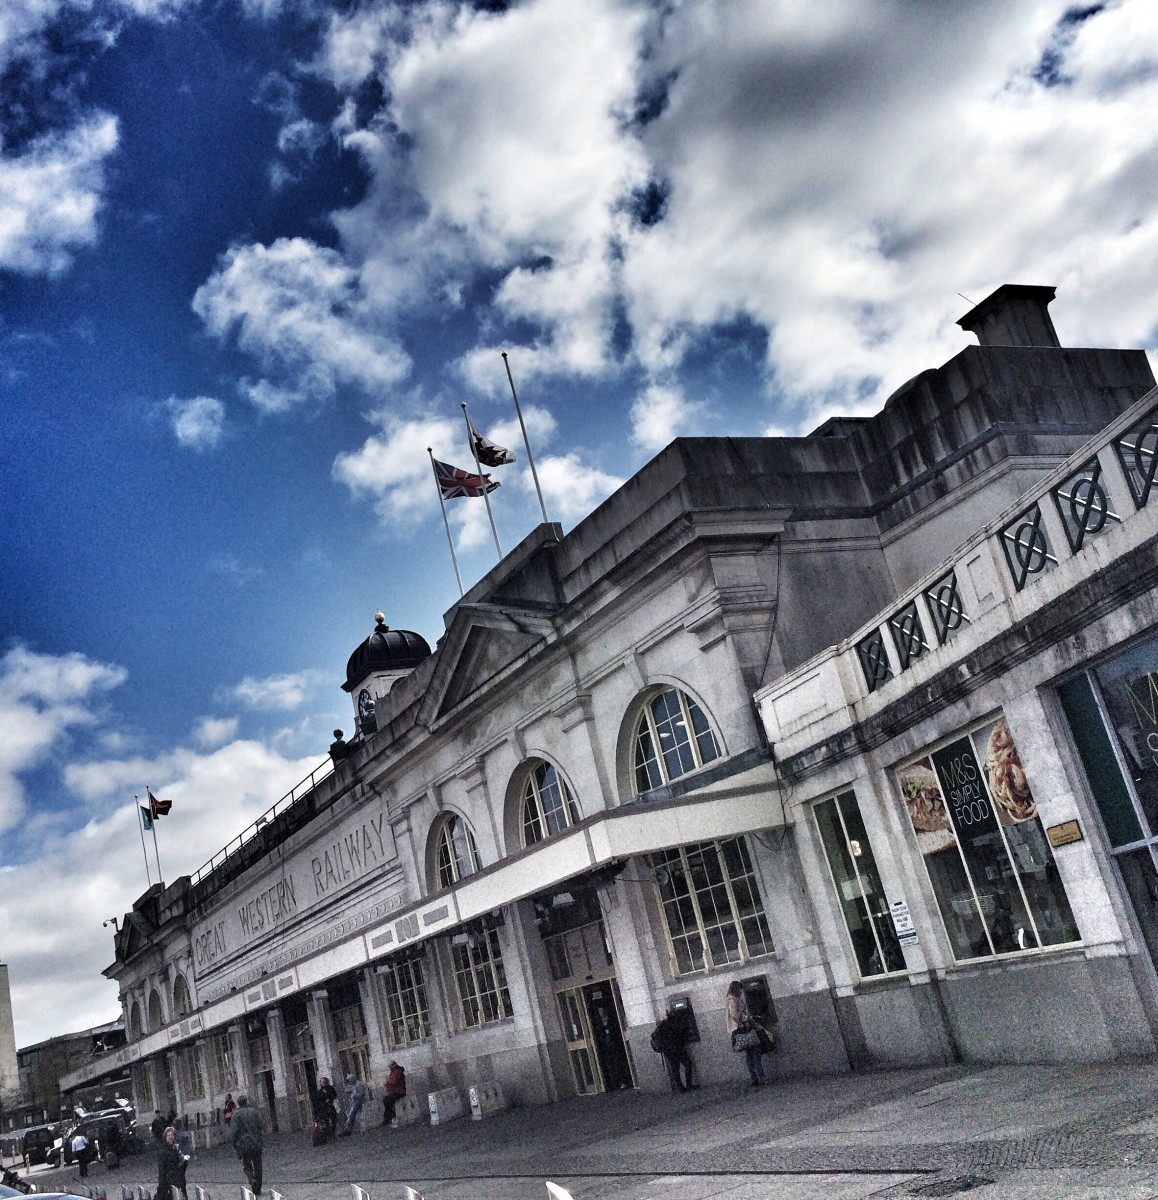 Cardiff Train Station, just before #newsHACK VI